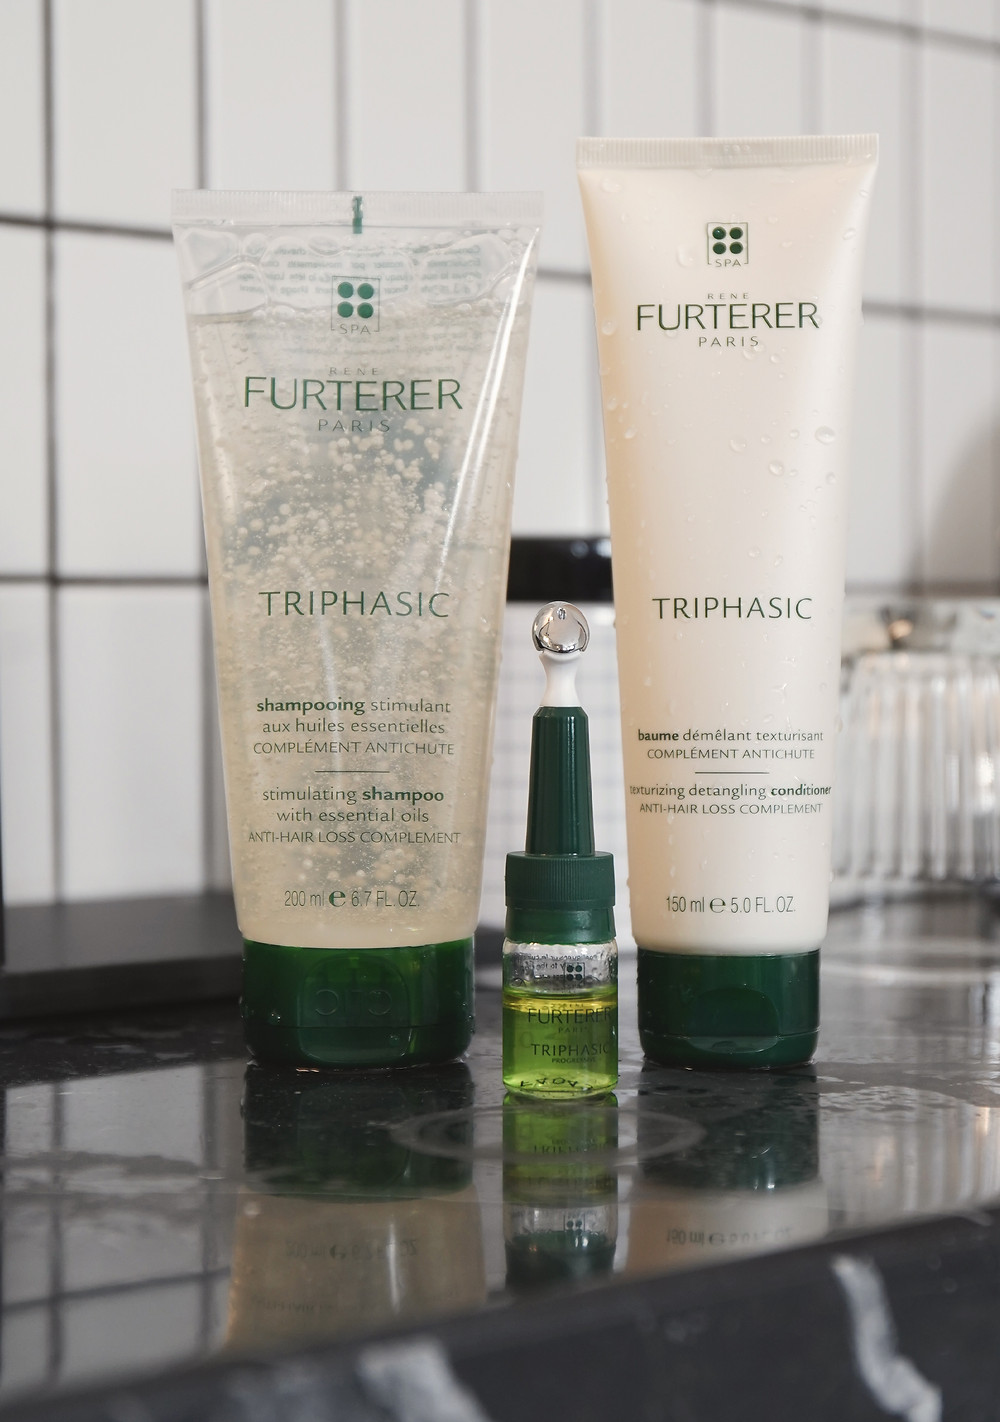 This product combined with Complex 5, Triphasic shampoo and conditioner is your best option to prevent hair loss and keep the hair you have grow healthier and fuller.